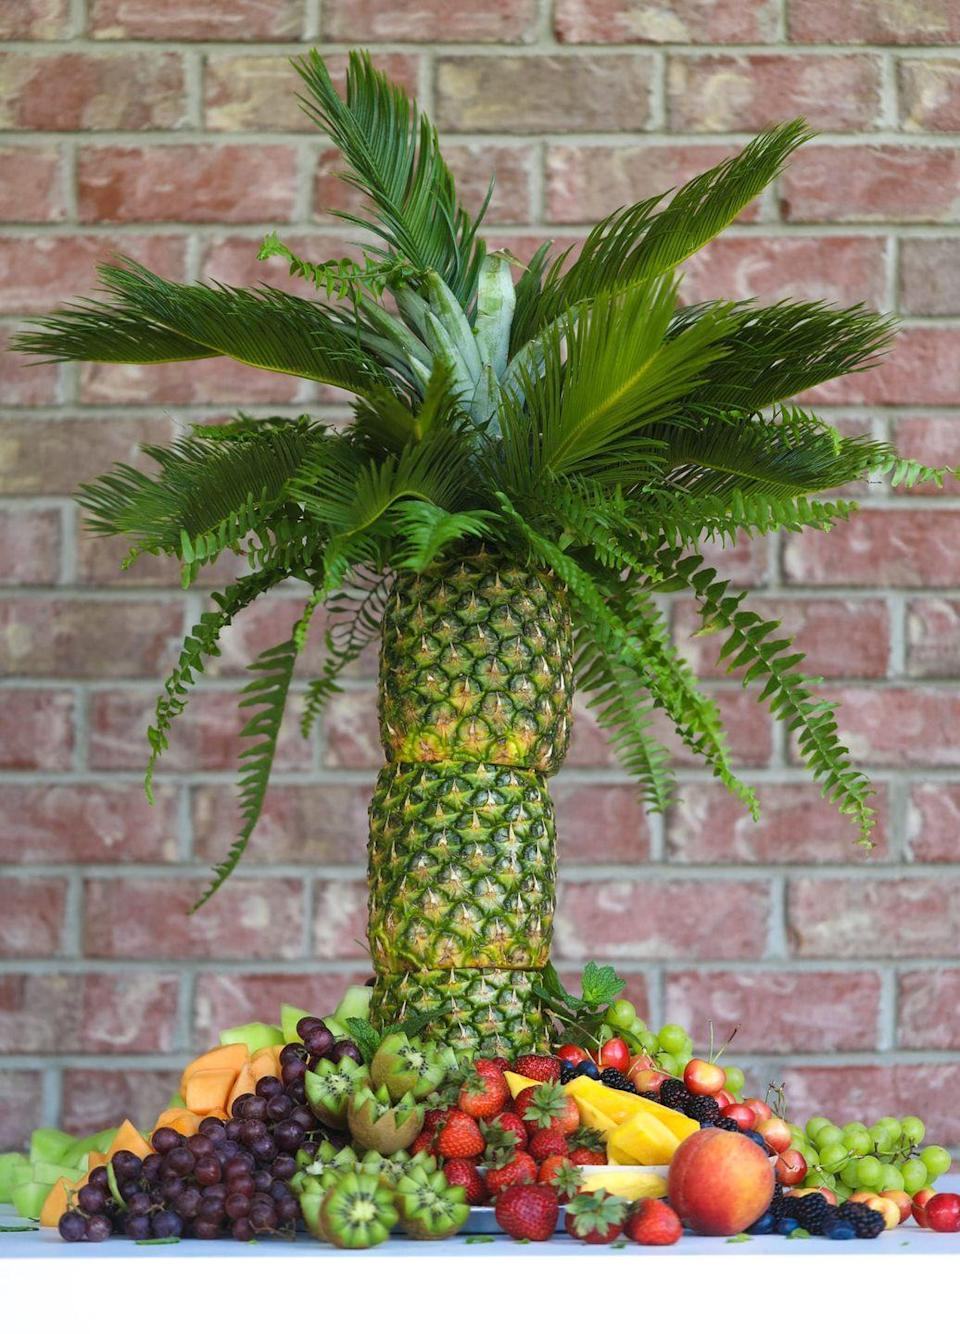 """<p>With this at the center of your buffet, one thing's for sure: Your family and friends have never seen barbecue food served like this. </p><p><a class=""""link rapid-noclick-resp"""" href=""""https://www.howsweeteats.com/2019/06/pineapple-palm-tree/"""" rel=""""nofollow noopener"""" target=""""_blank"""" data-ylk=""""slk:GET THE RECIPE"""">GET THE RECIPE</a></p><p><a class=""""link rapid-noclick-resp"""" href=""""https://www.amazon.com/Maitys-Floral-Support-Wooden-Natural/dp/B07S2J9ZYM/ref=sr_1_32?dchild=1&keywords=garden+stakes&qid=1591630936&sr=8-32&tag=syn-yahoo-20&ascsubtag=%5Bartid%7C10072.g.32715018%5Bsrc%7Cyahoo-us"""" rel=""""nofollow noopener"""" target=""""_blank"""" data-ylk=""""slk:SHOP STAKES"""">SHOP STAKES</a></p>"""